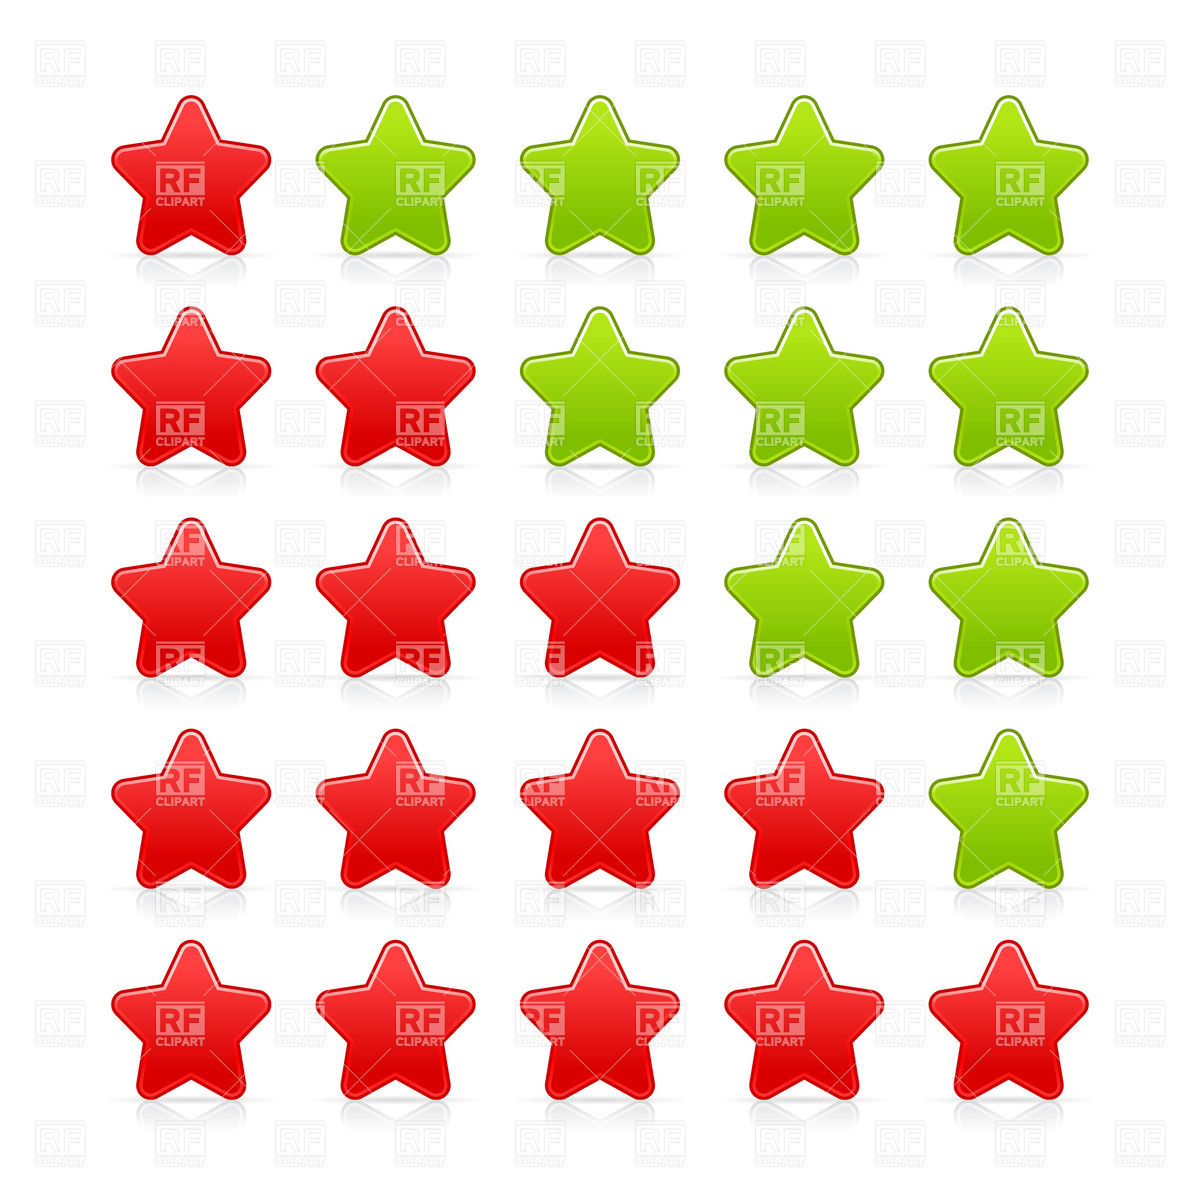 1200x1200 Rating Bar With Red And Green Stars Royalty Free Vector Clip Art